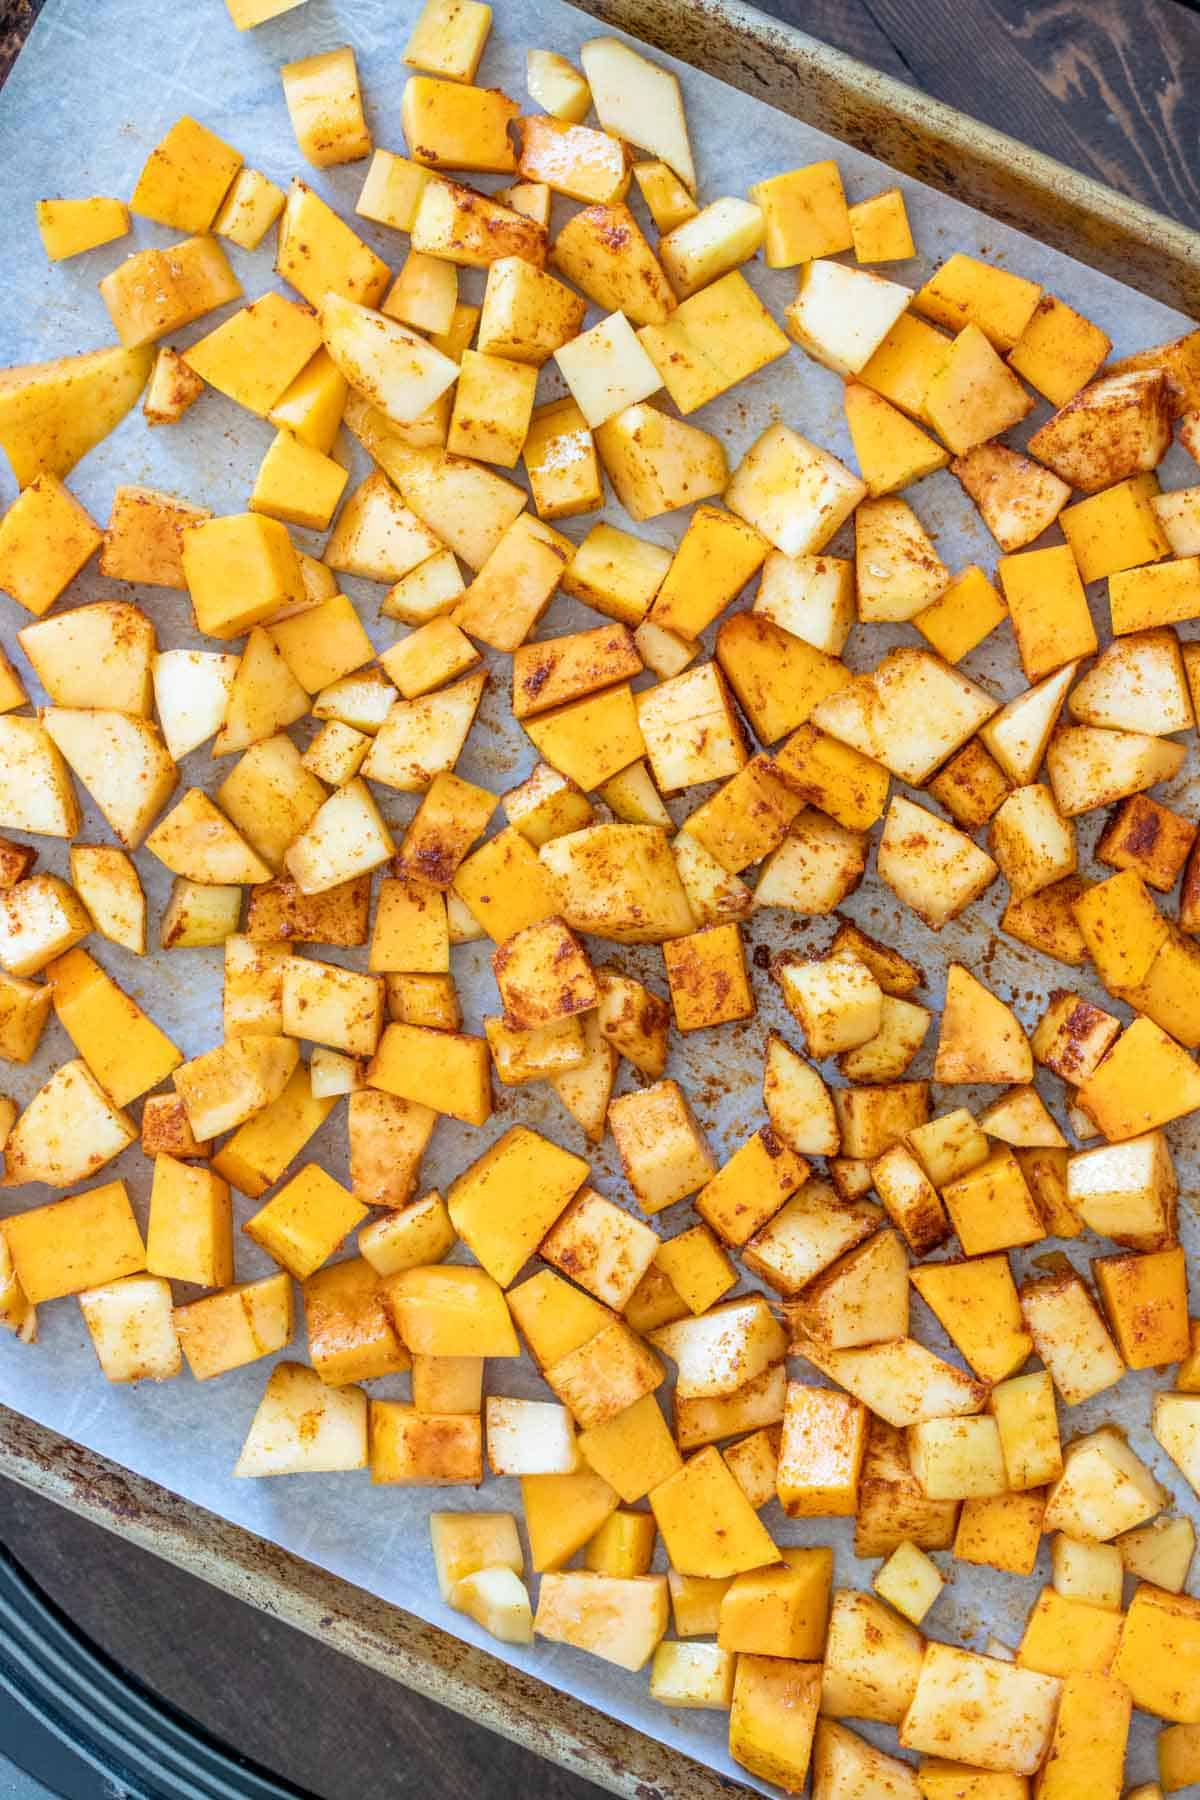 Top view of roasted butternut squash pieces on a baking sheet